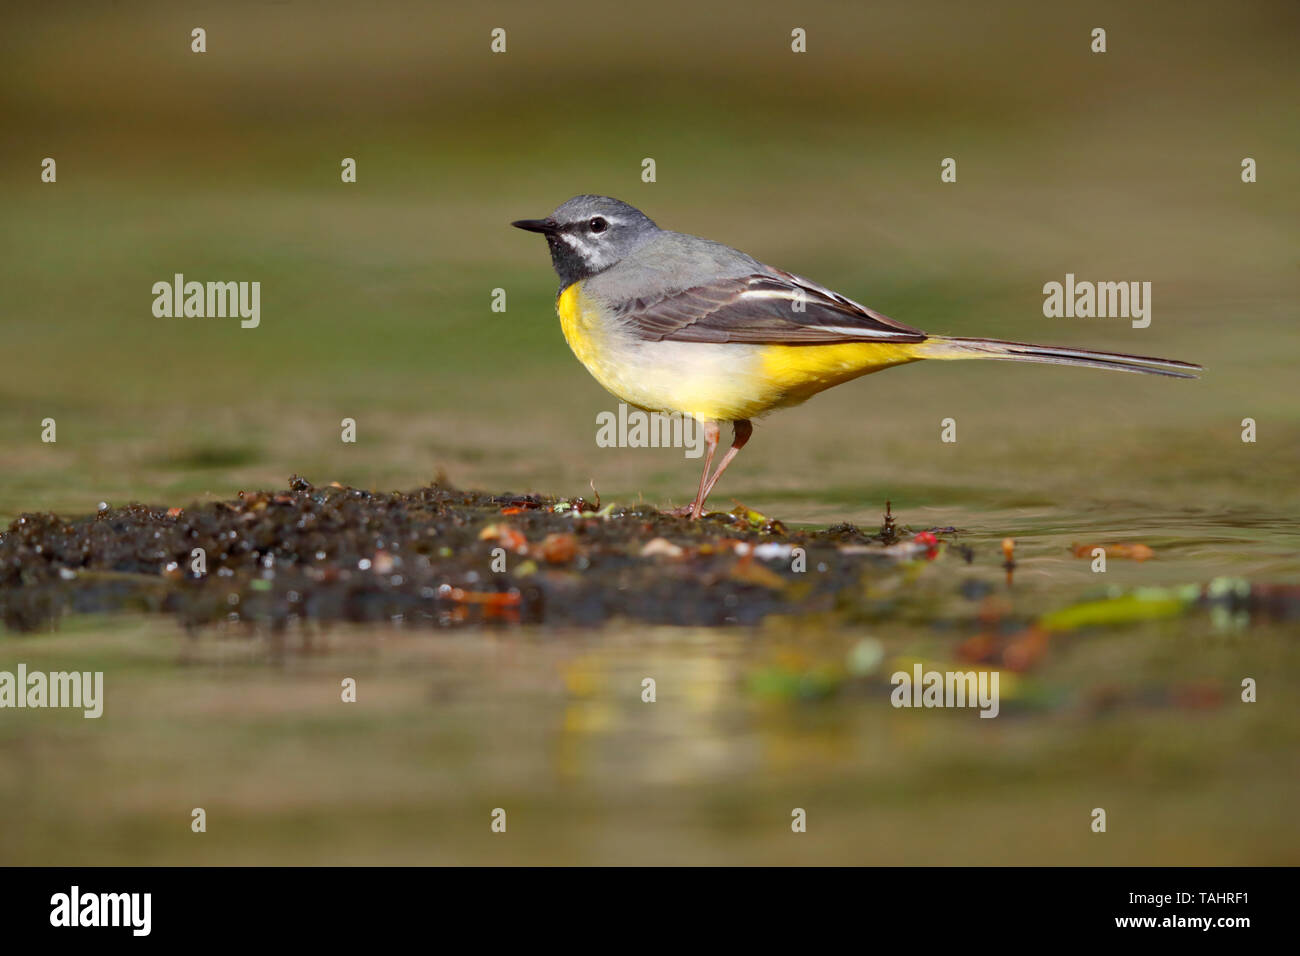 A beautiful adult male Grey Wagtail (Motacilla cinerea) in summer near his nest on the River Barle in Dulverton, Exmoor, Somerset, England Stock Photo